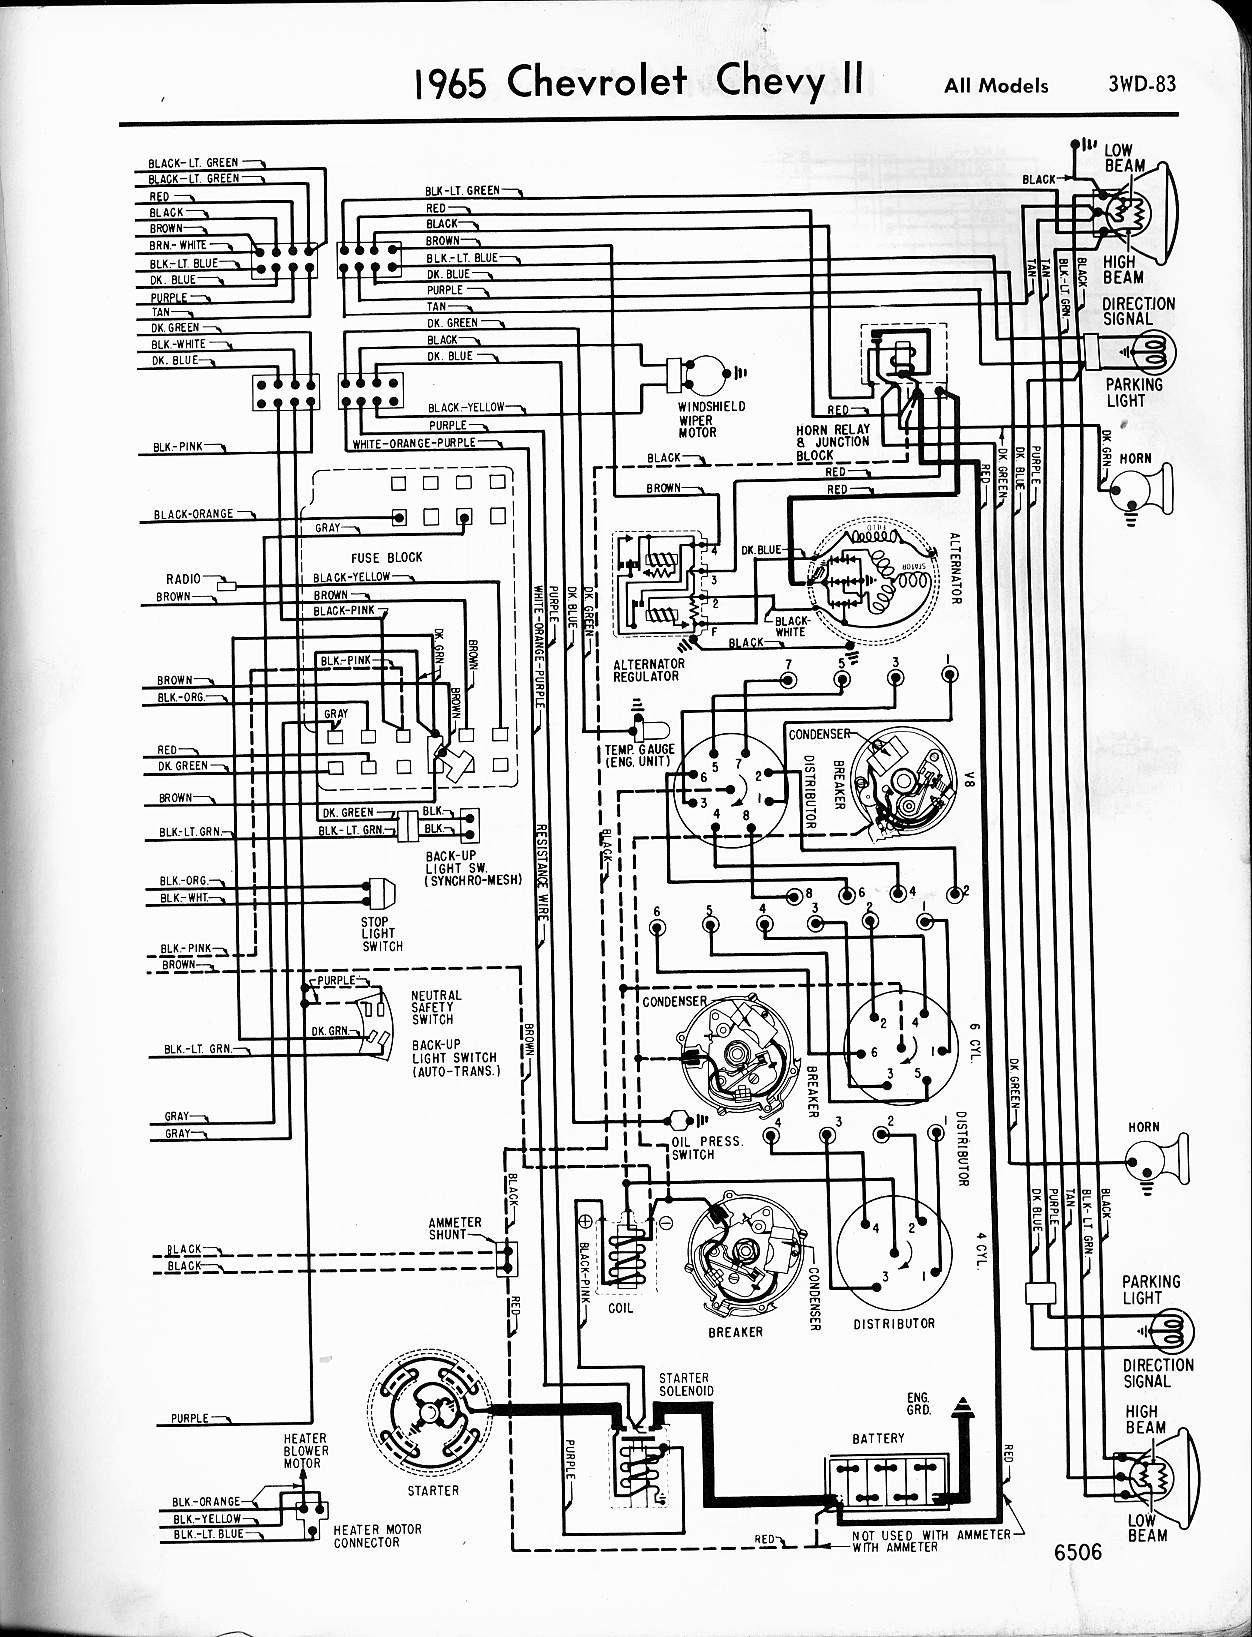 1966 chevrolet impala wiring diagram free picture 2008 chevy impala wiring diagram my wiring diagram chevy impala bcm wiring diagram free picture #14